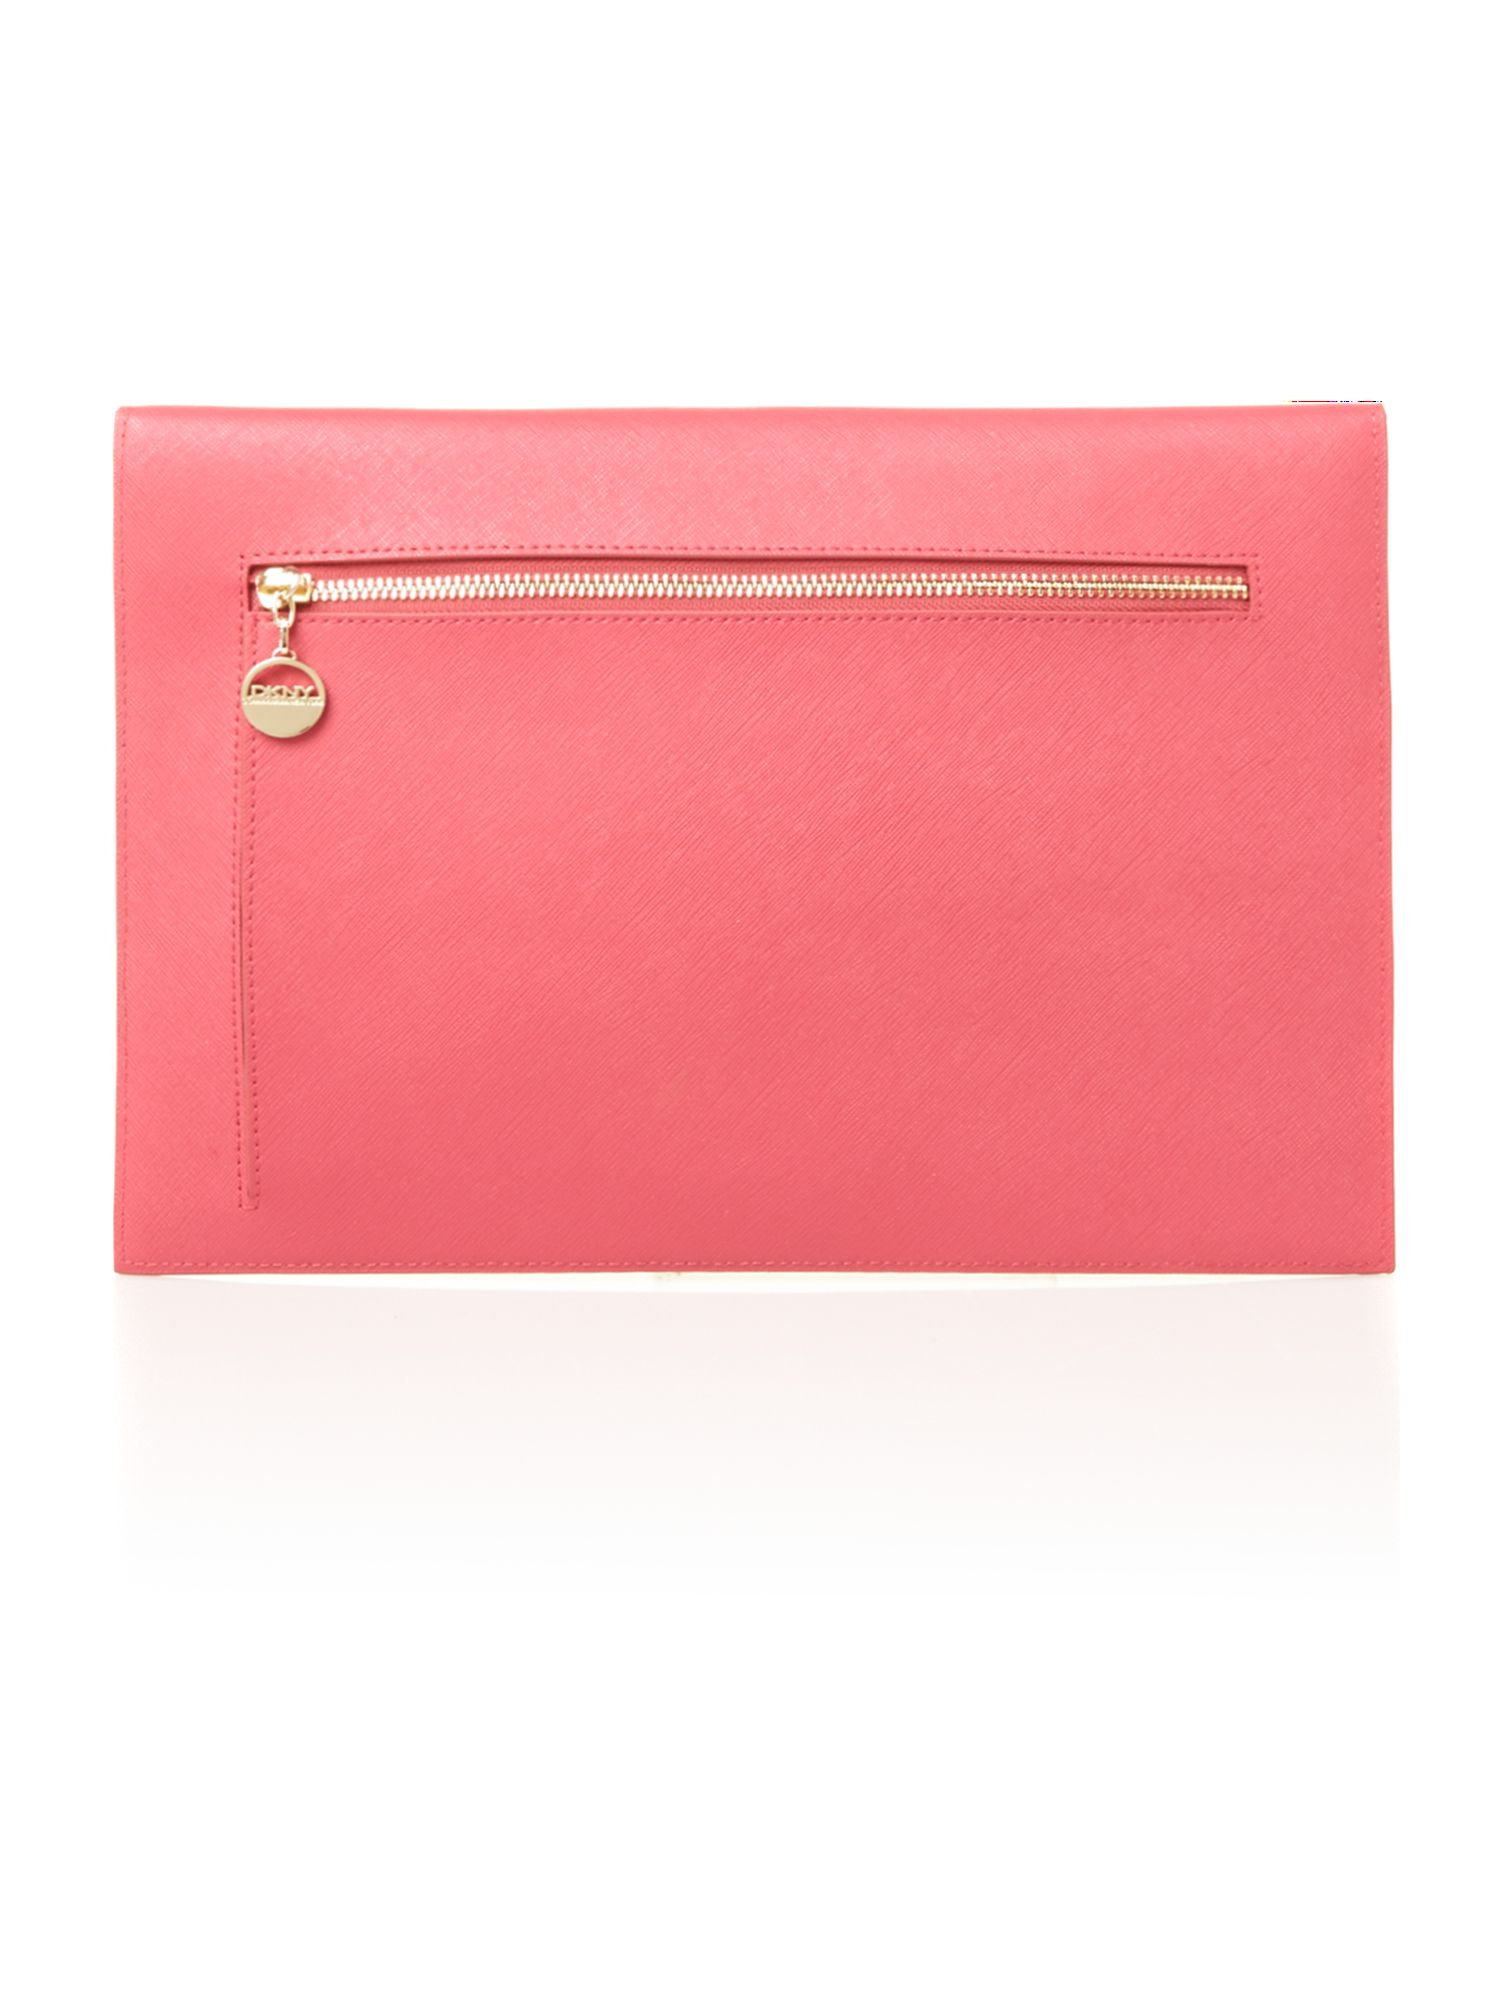 Saffiano pink document case